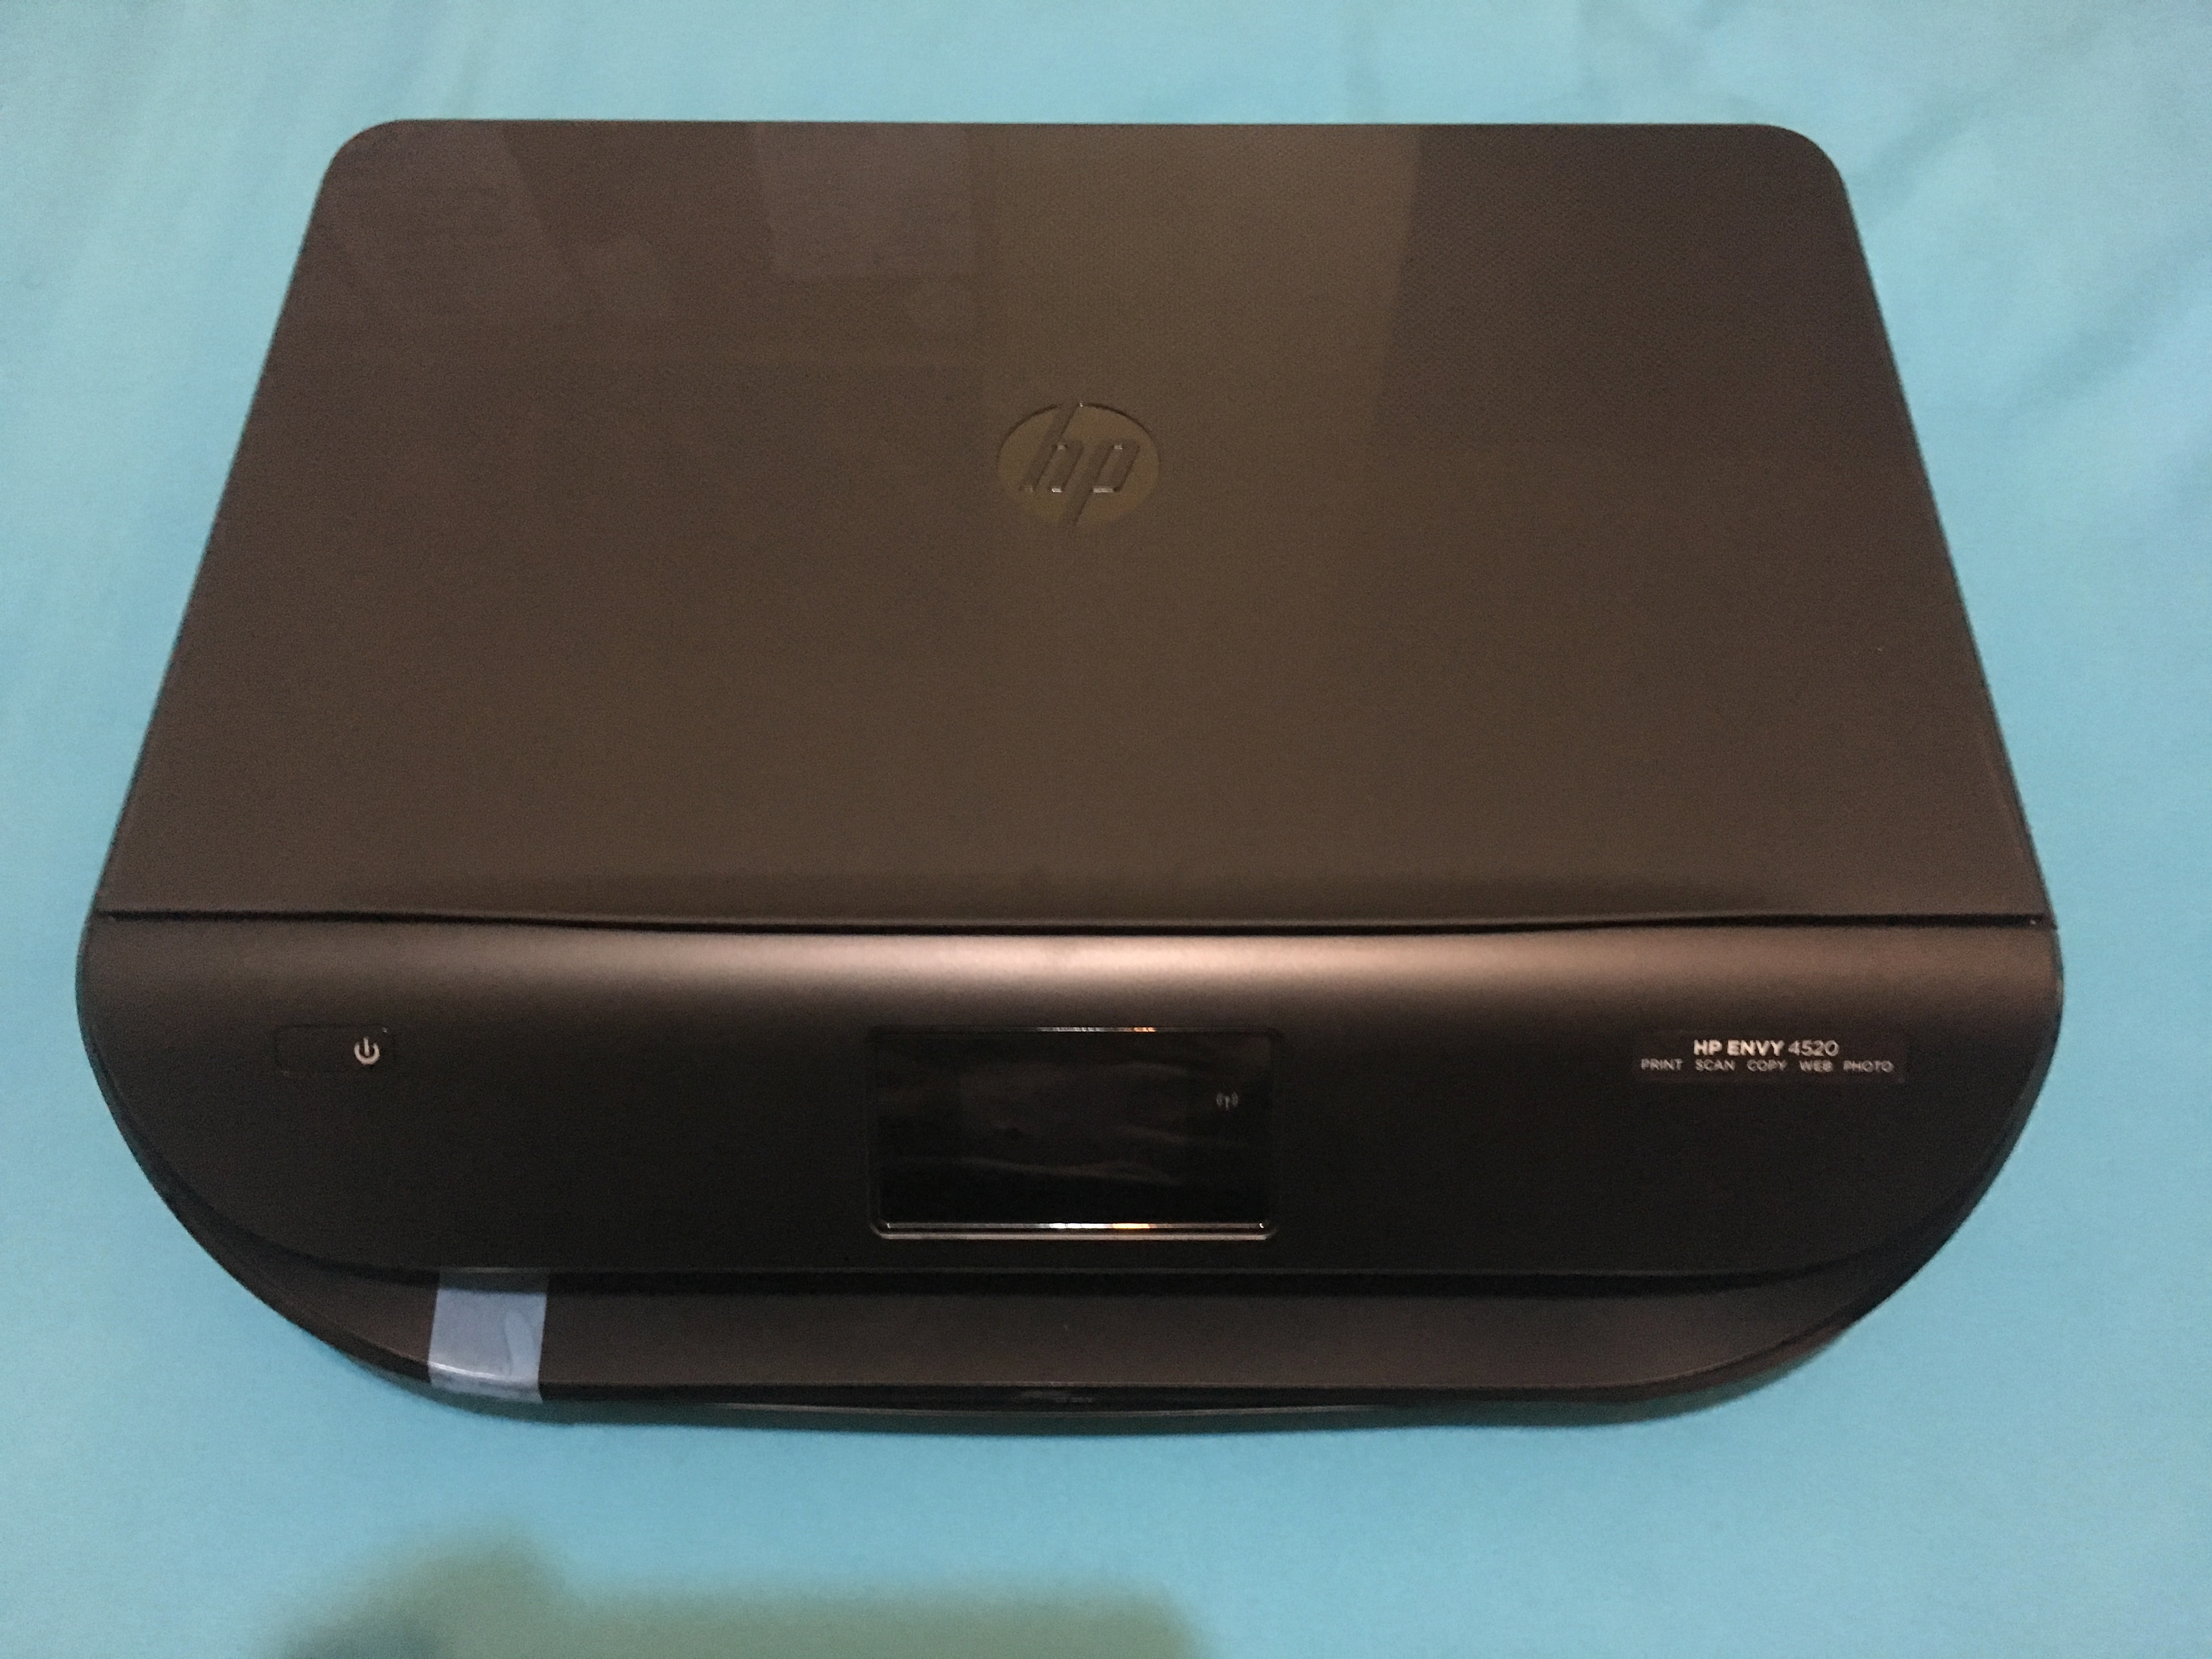 how to open hp envy 4520 printer